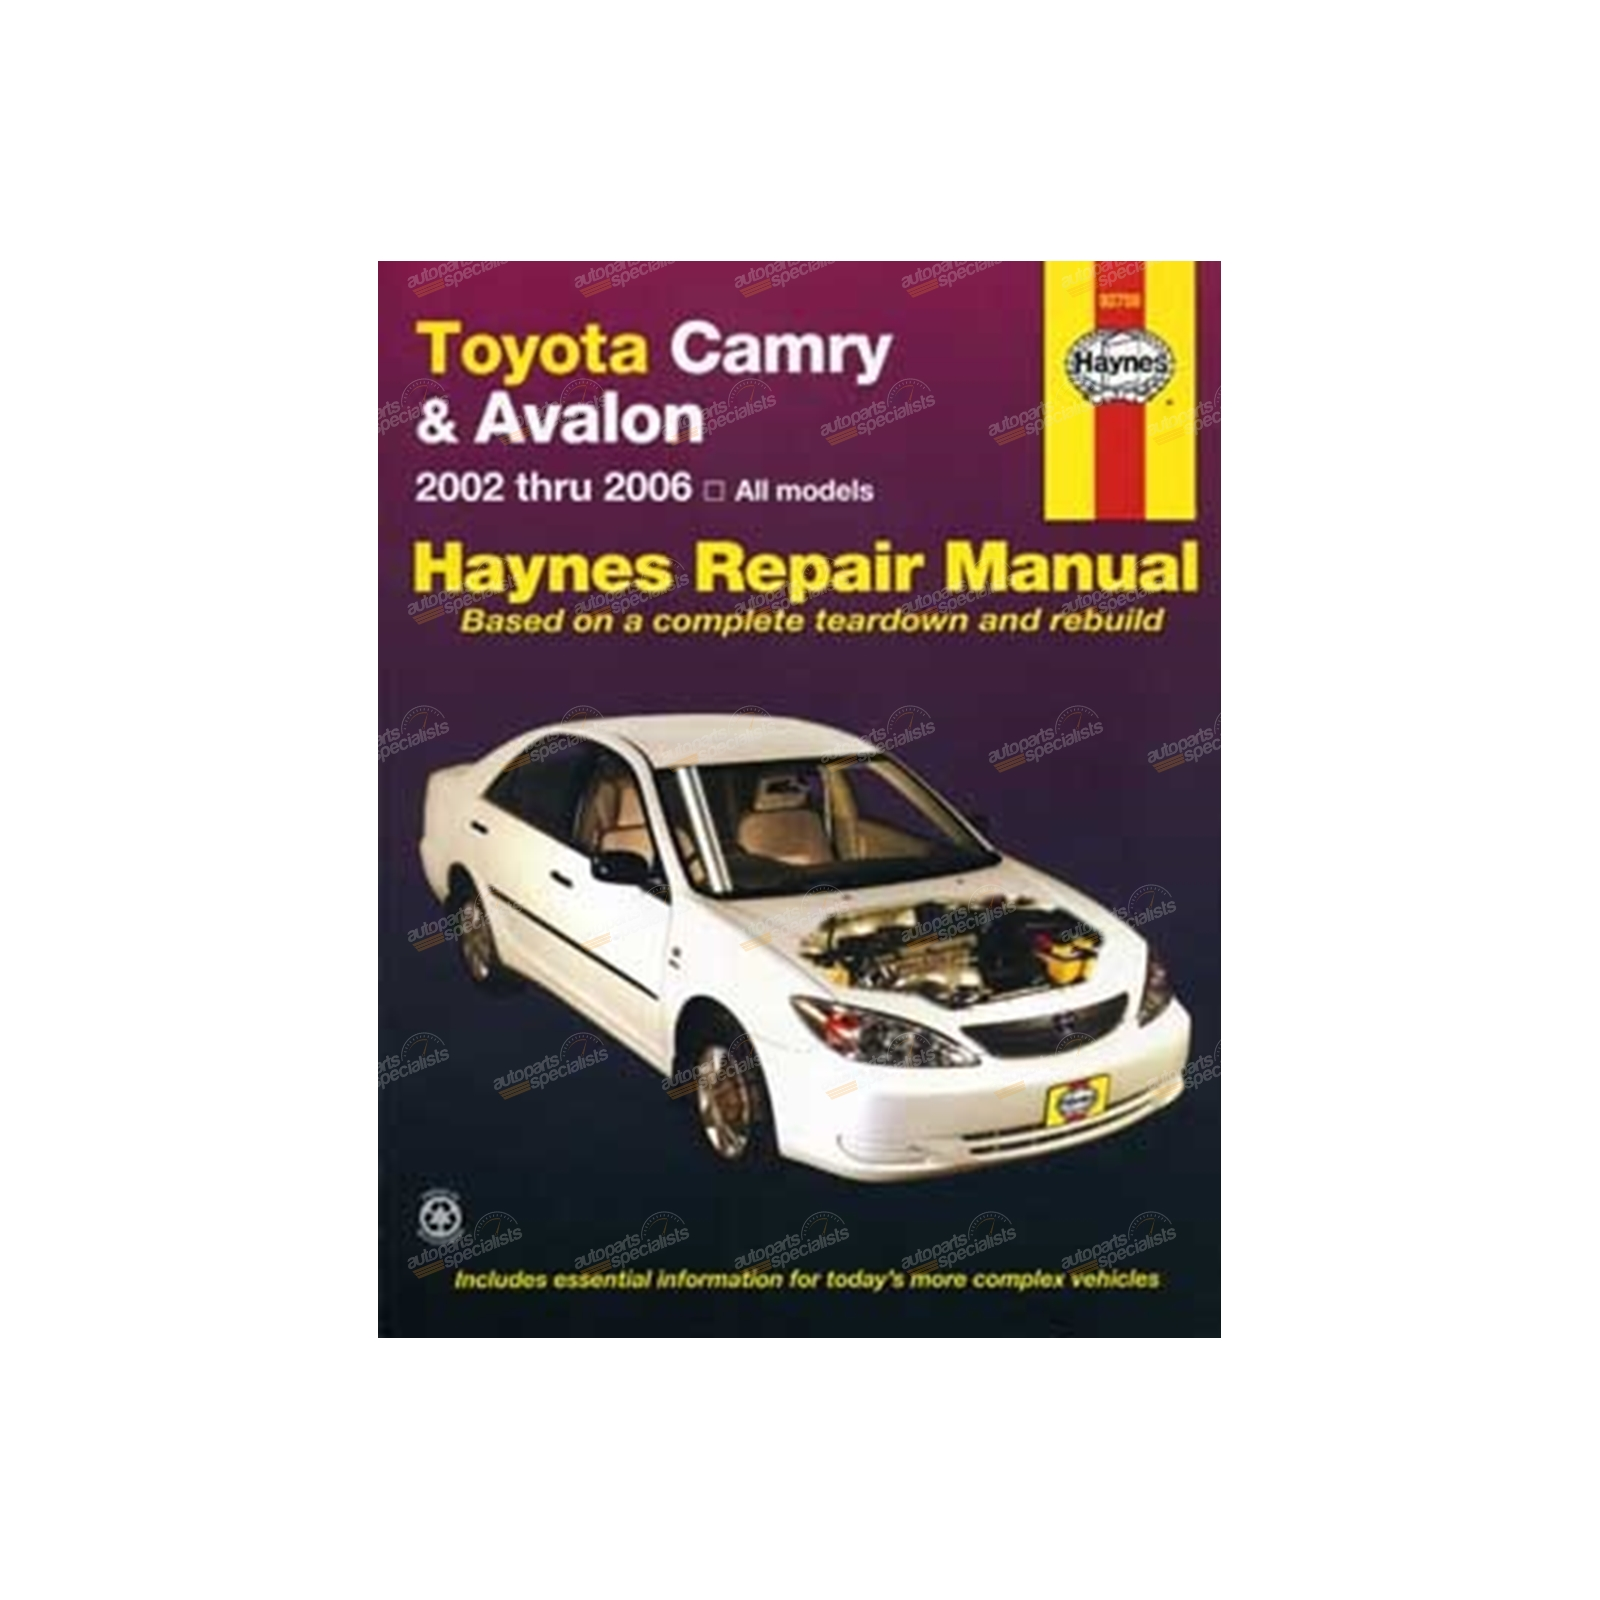 Haynes Car Repair Manual Book suits Toyota Camry ACV36 MCV36 02-06 2.4L 3.0